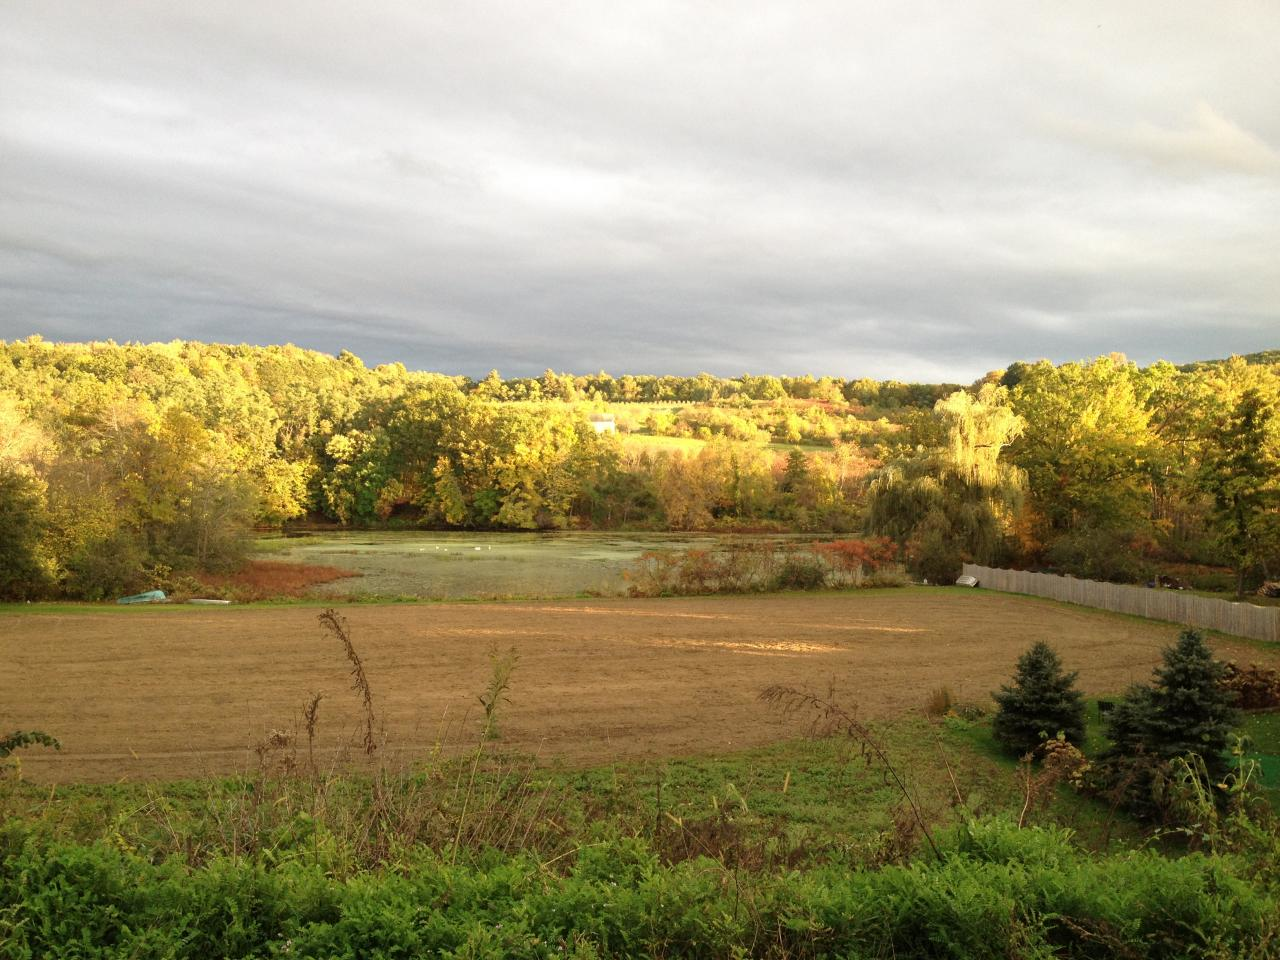 Field, Lake Warner, and the orchard